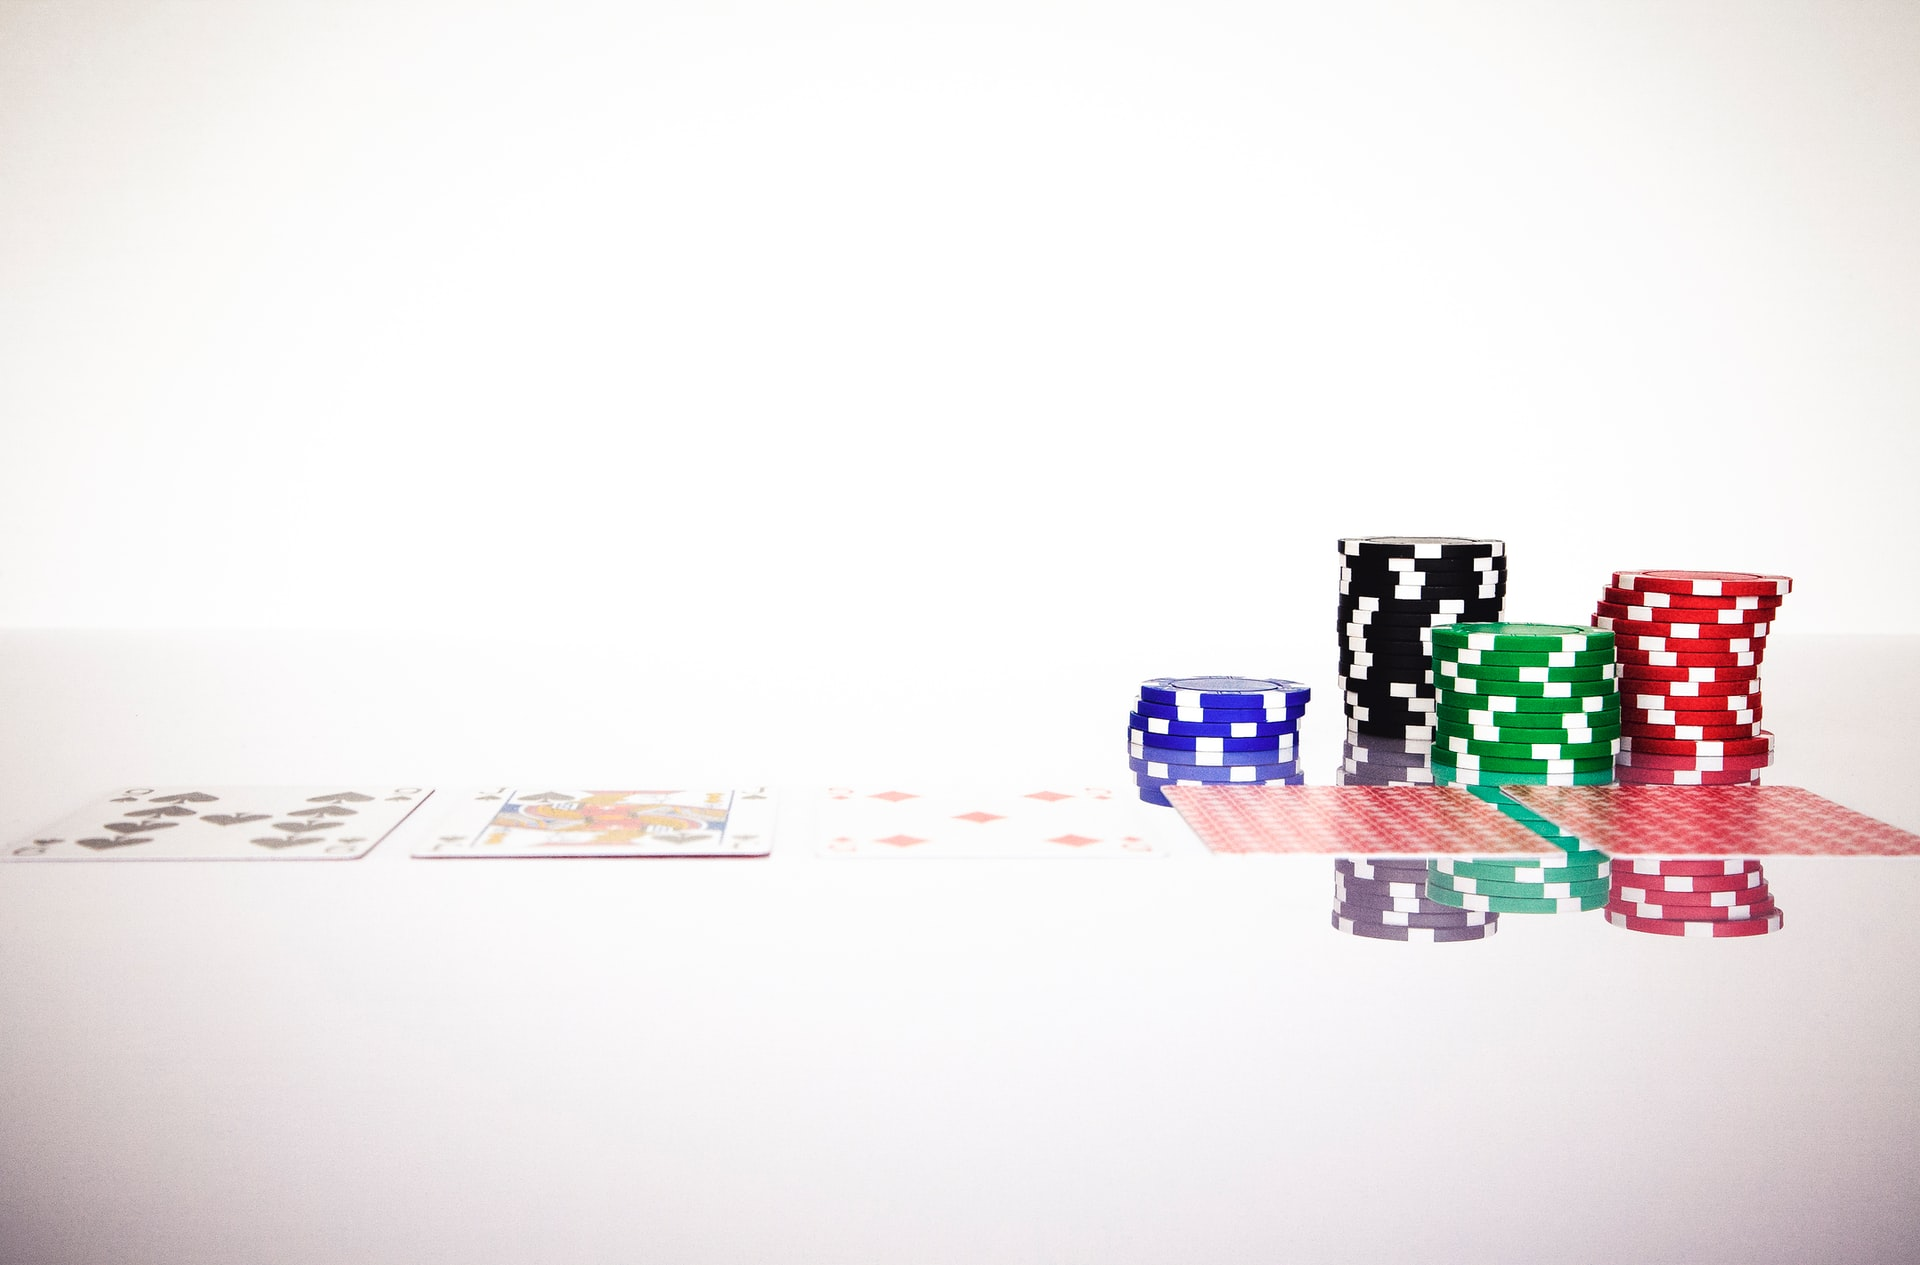 Is Baccarat Better Than Blackjack?